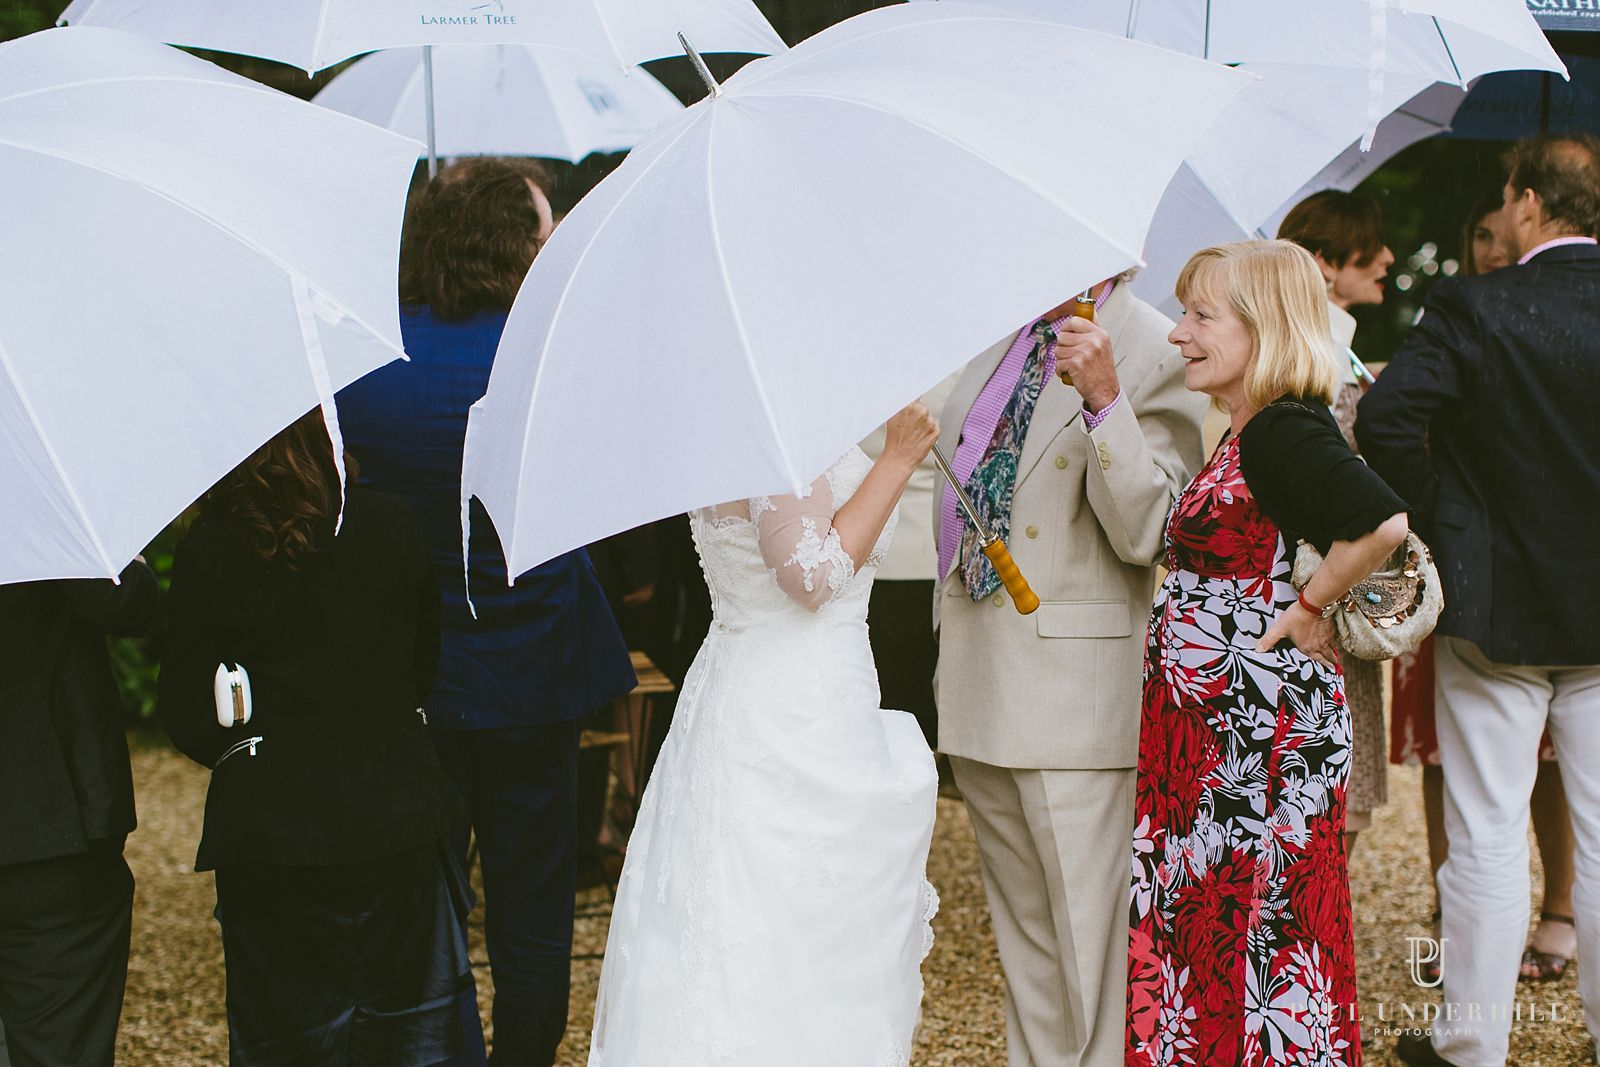 Bride under umbrella wedding documentary